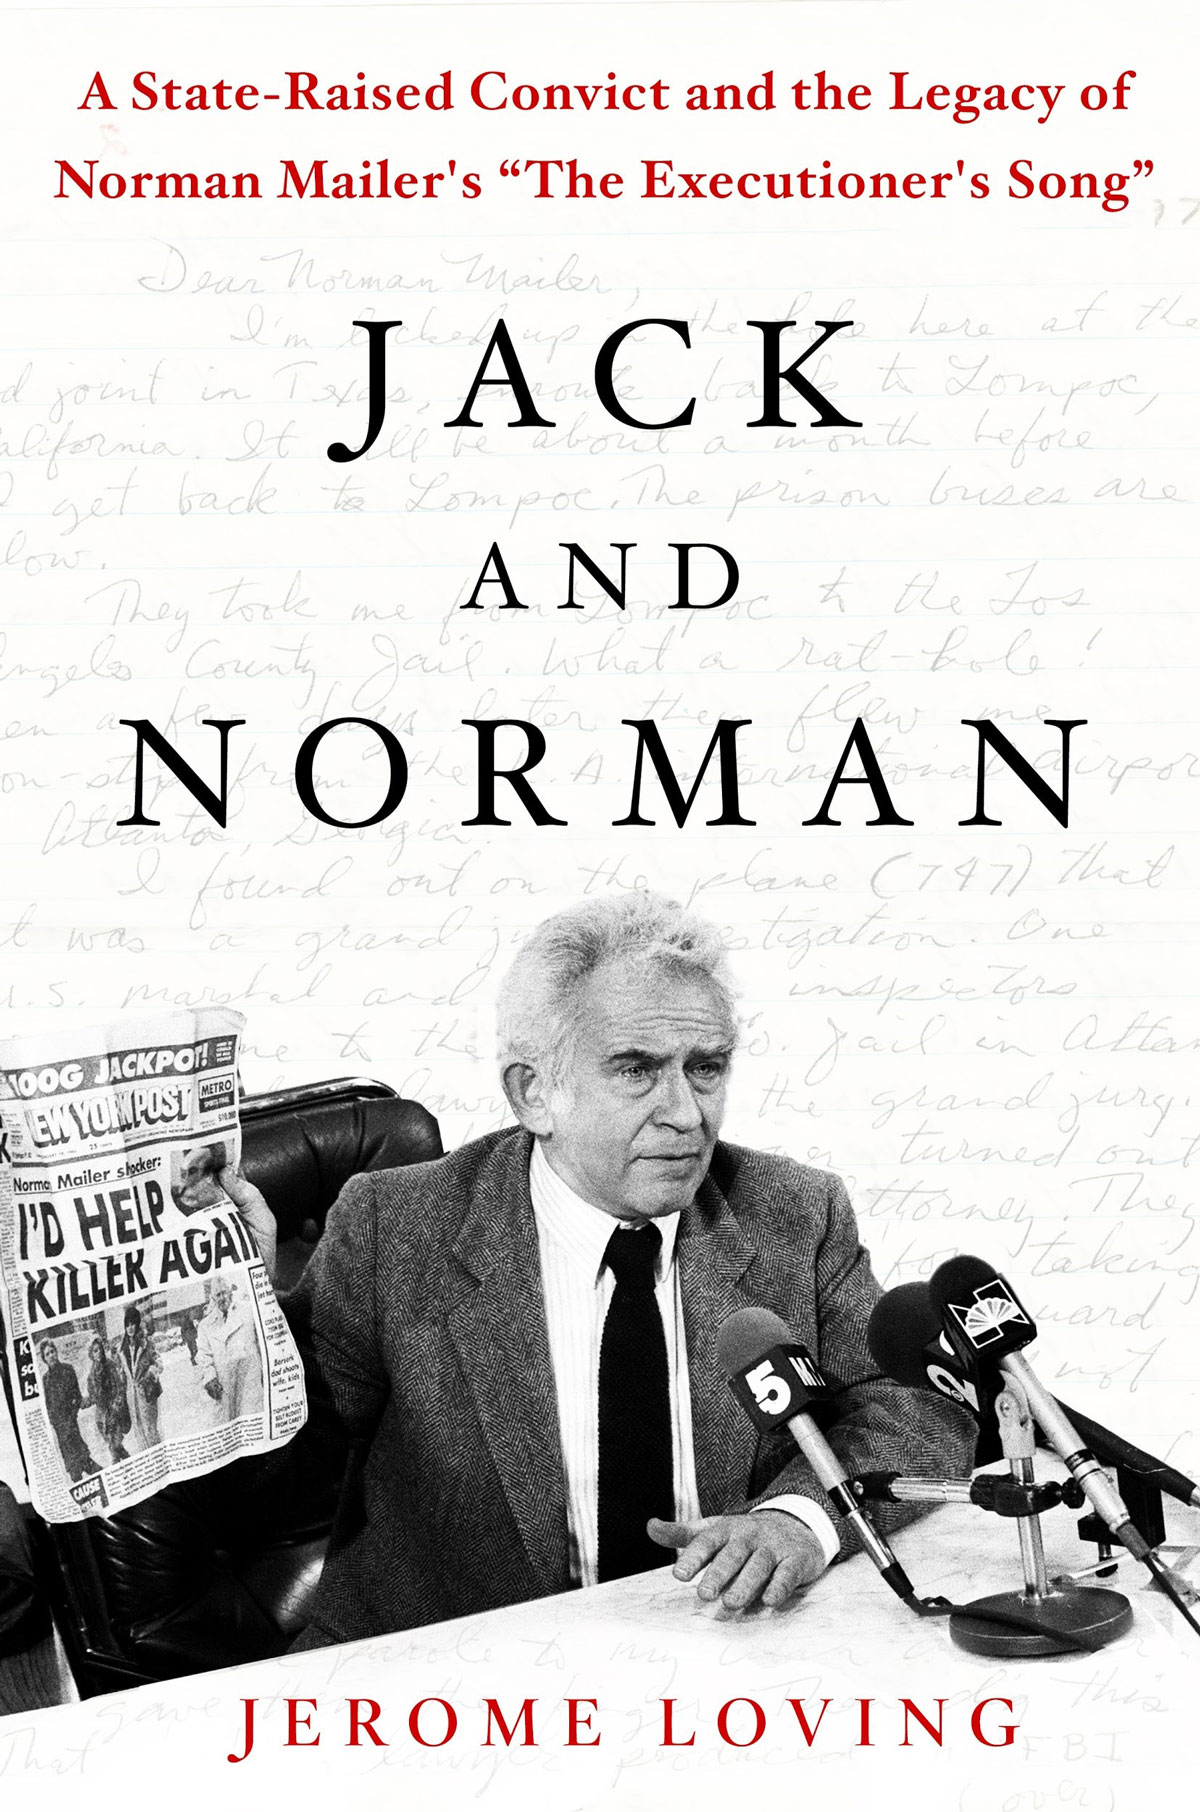 "The Art of American Crime: Q&A with Dr. Jerome Loving on <em>Jack and Norman: A State-Raised Convict and the Legacy of Norman Mailer's ""The Executioner's Song""</em>"